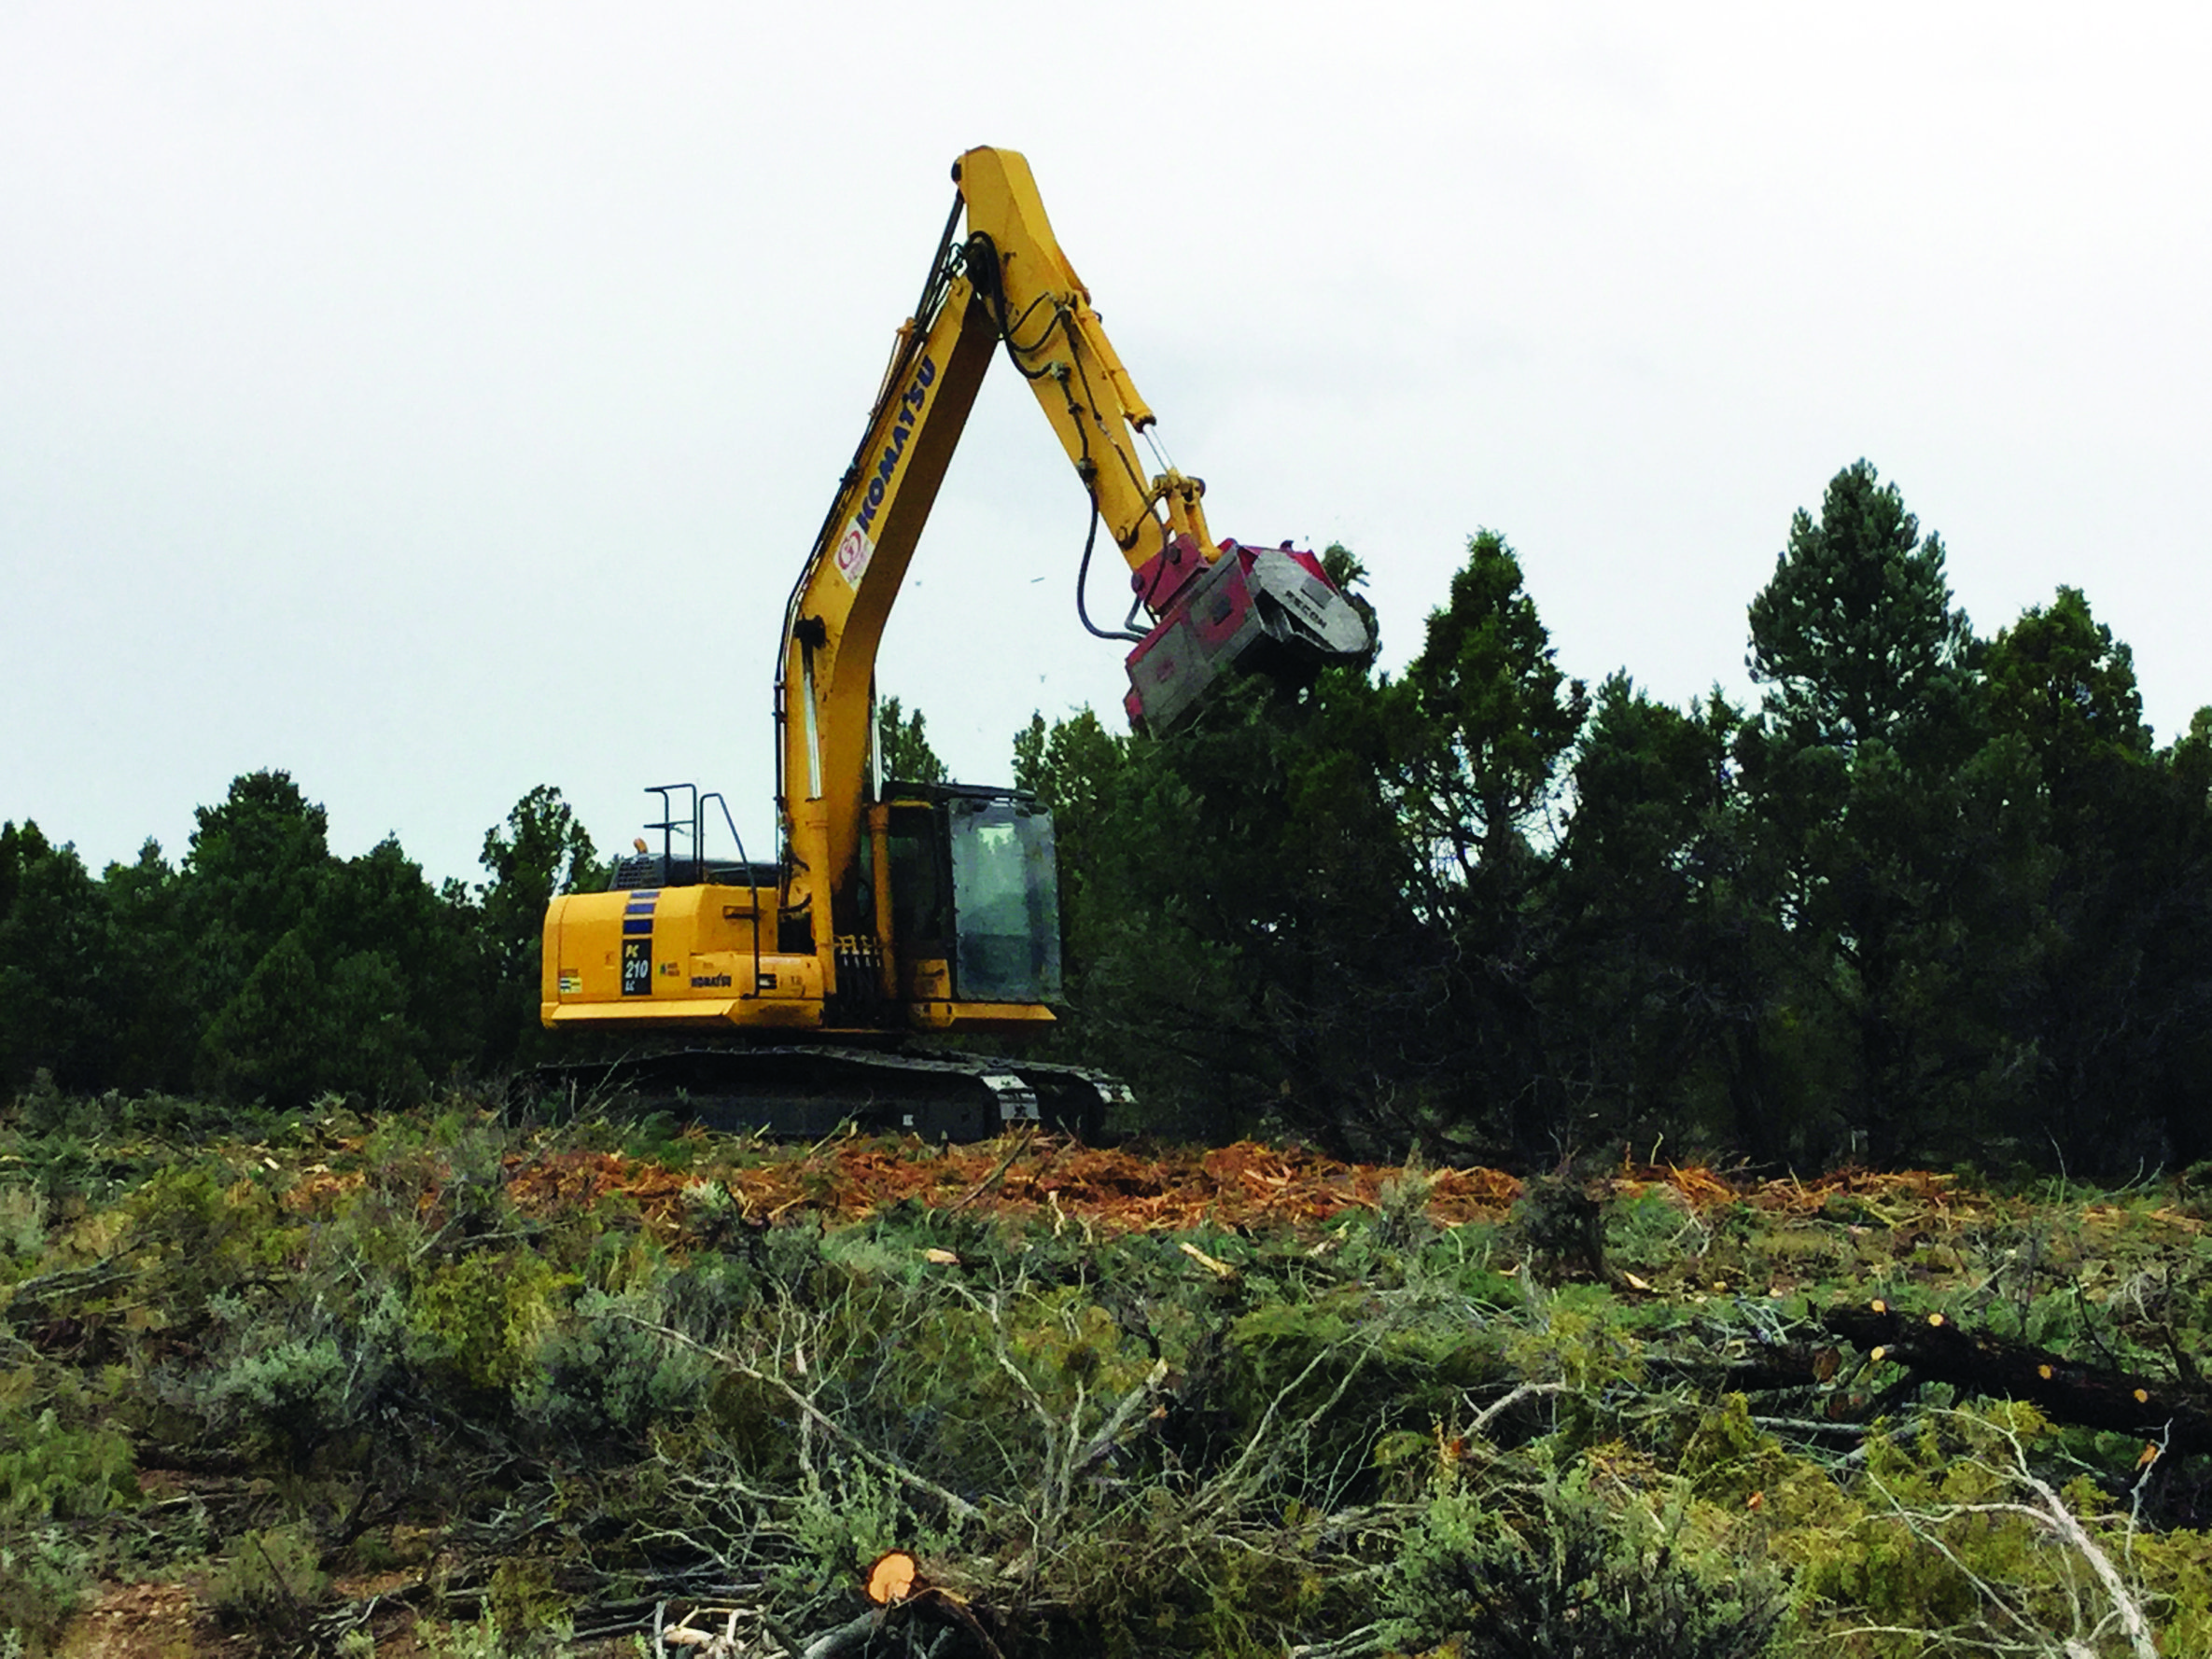 Wildfire risk factors being removed